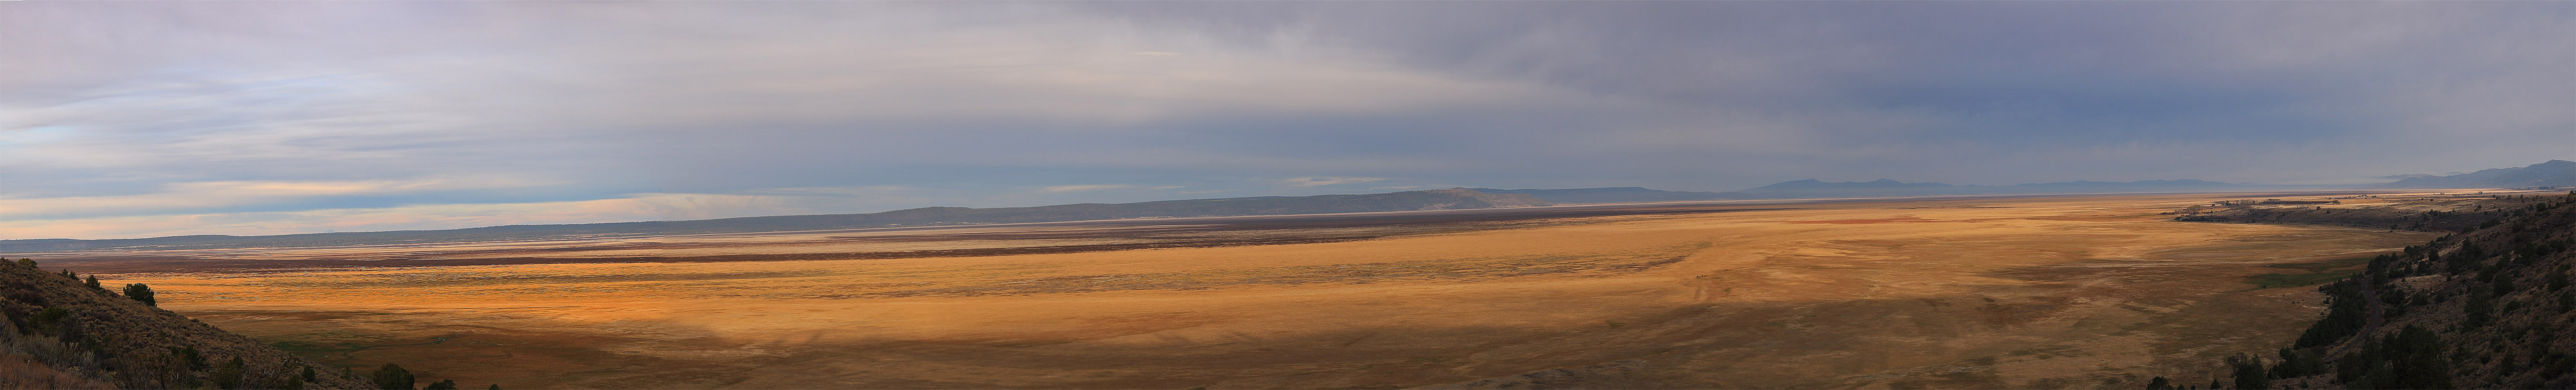 Goose Lake Oregon panorama with no water from 2015 drought